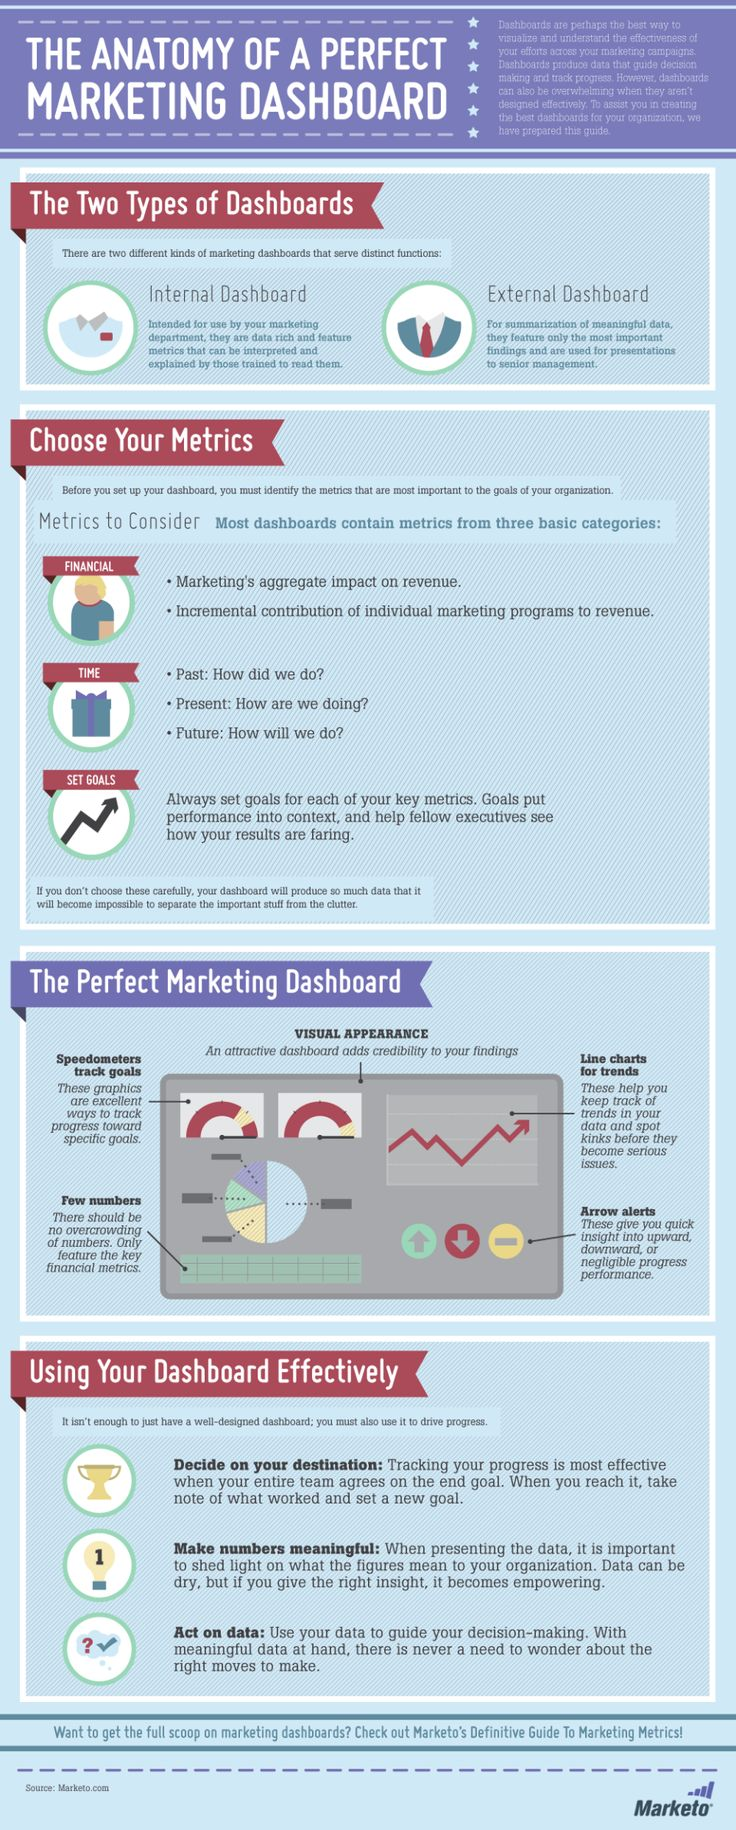 Marketing Metrics and Marketing Dashboard Infographic: The Anatomy of a Perfect B2B Marketing Dashboard